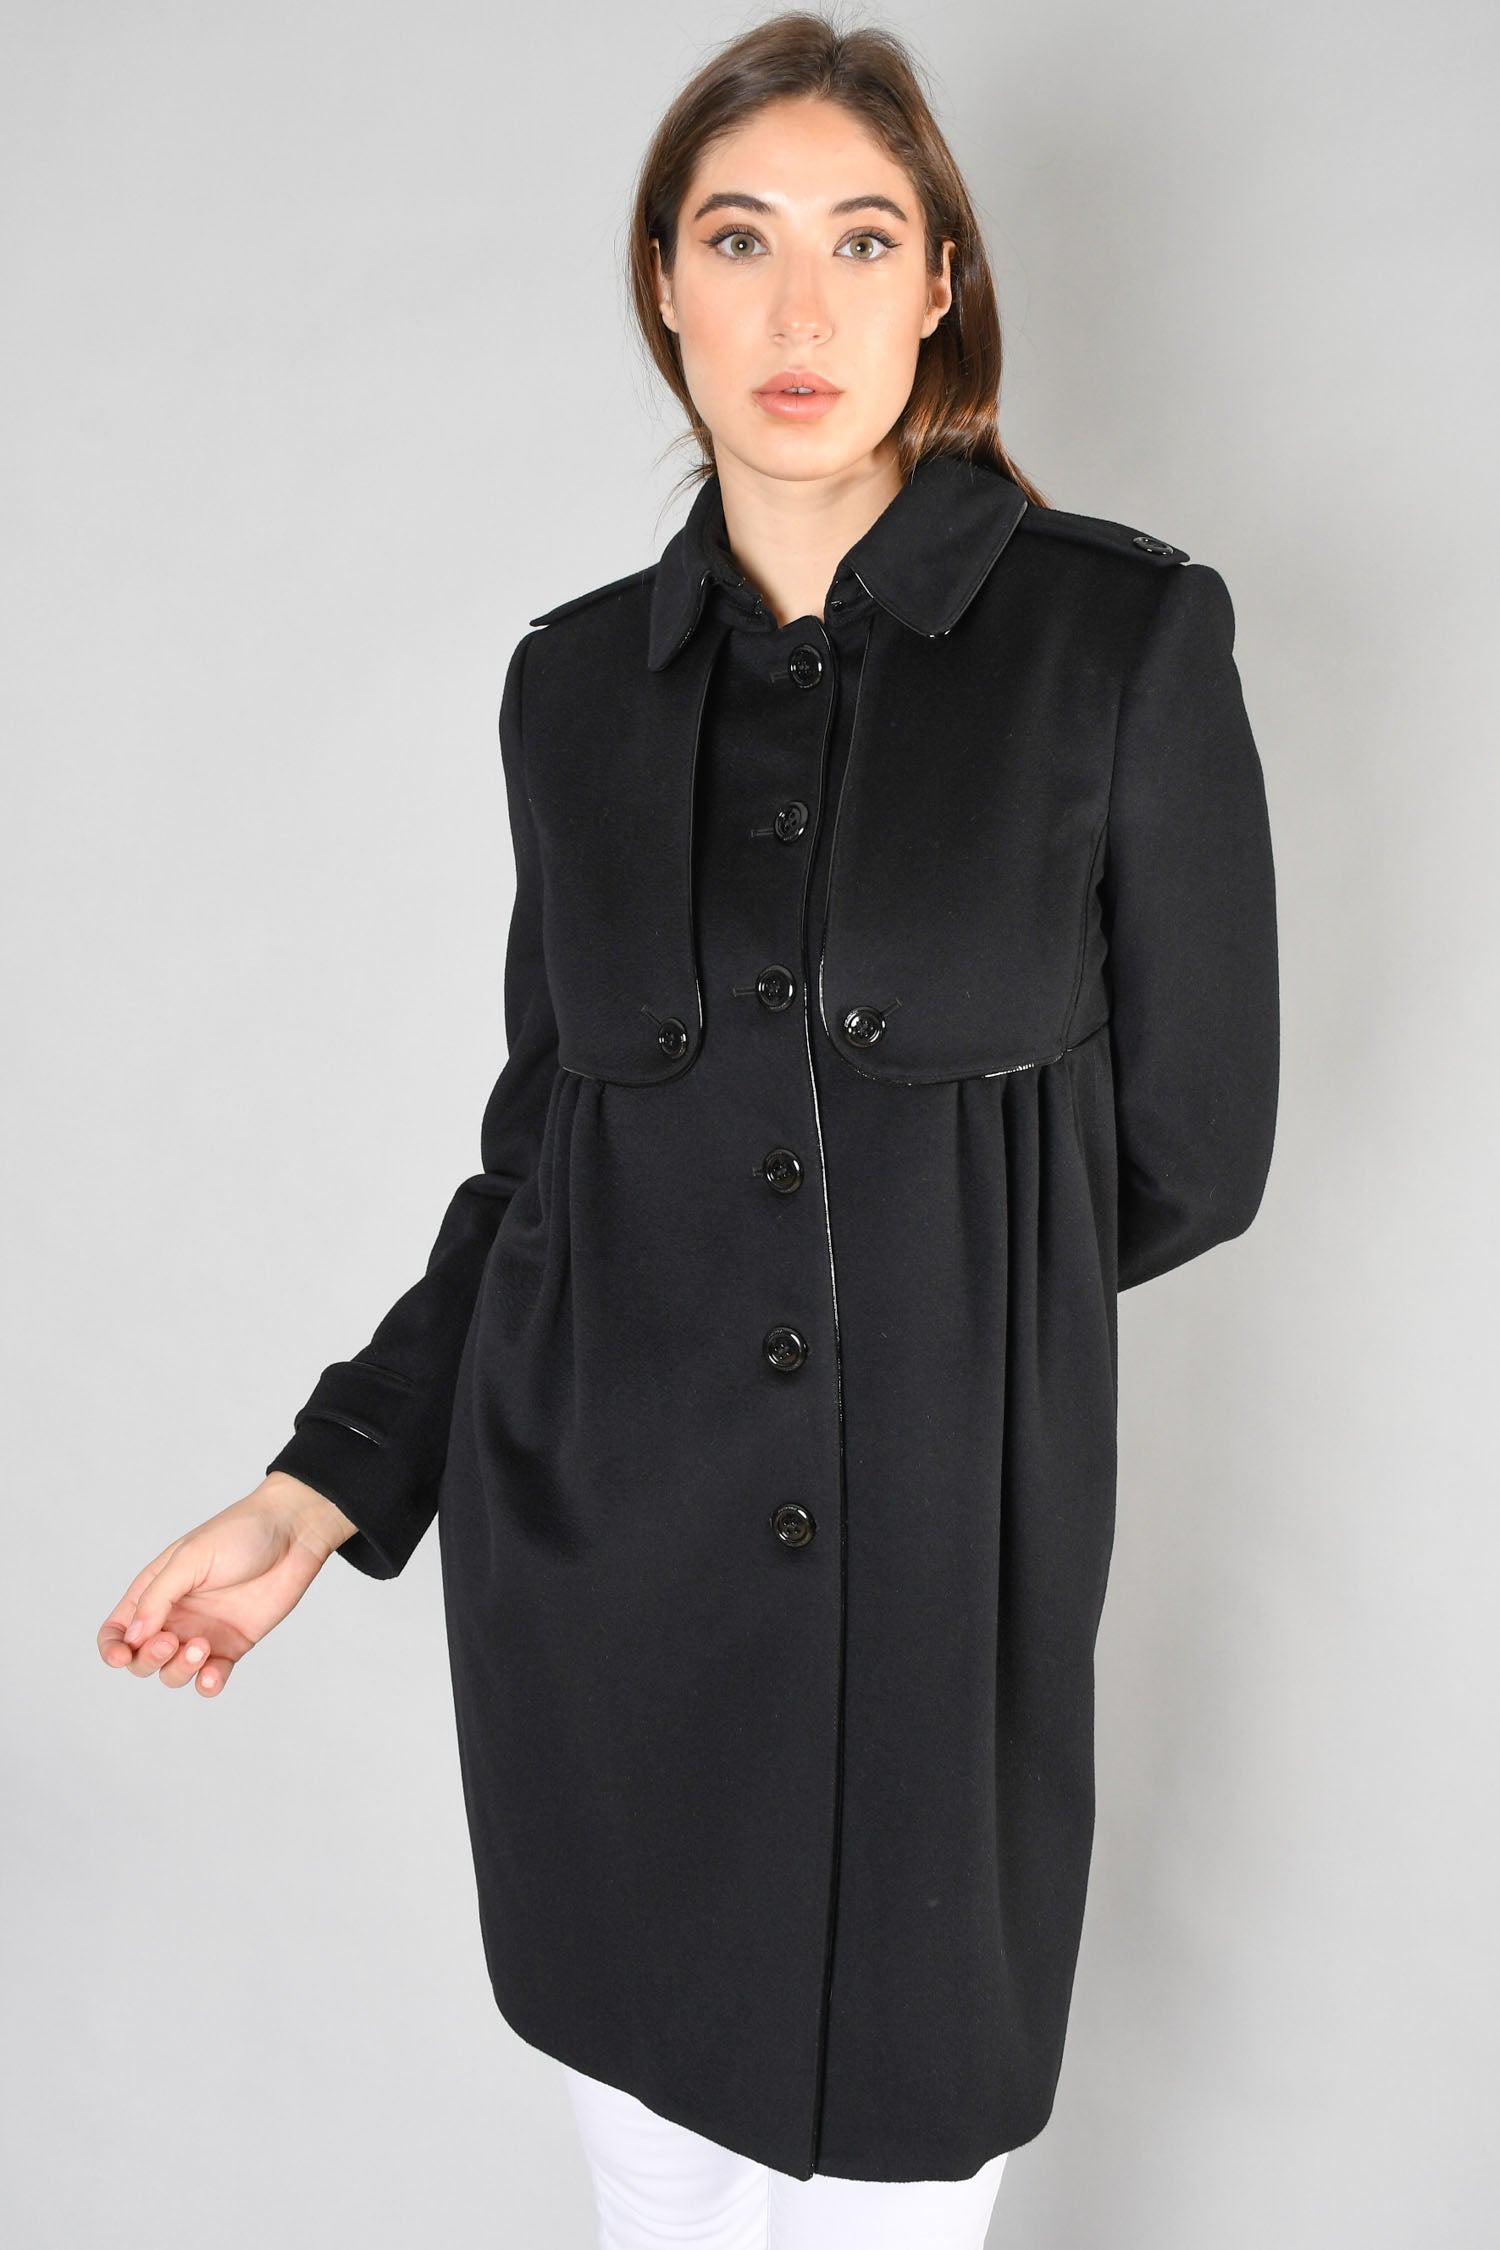 Burberry Black Wool/Cashmere Coat w/ Patent Leather Piping Size 8 US